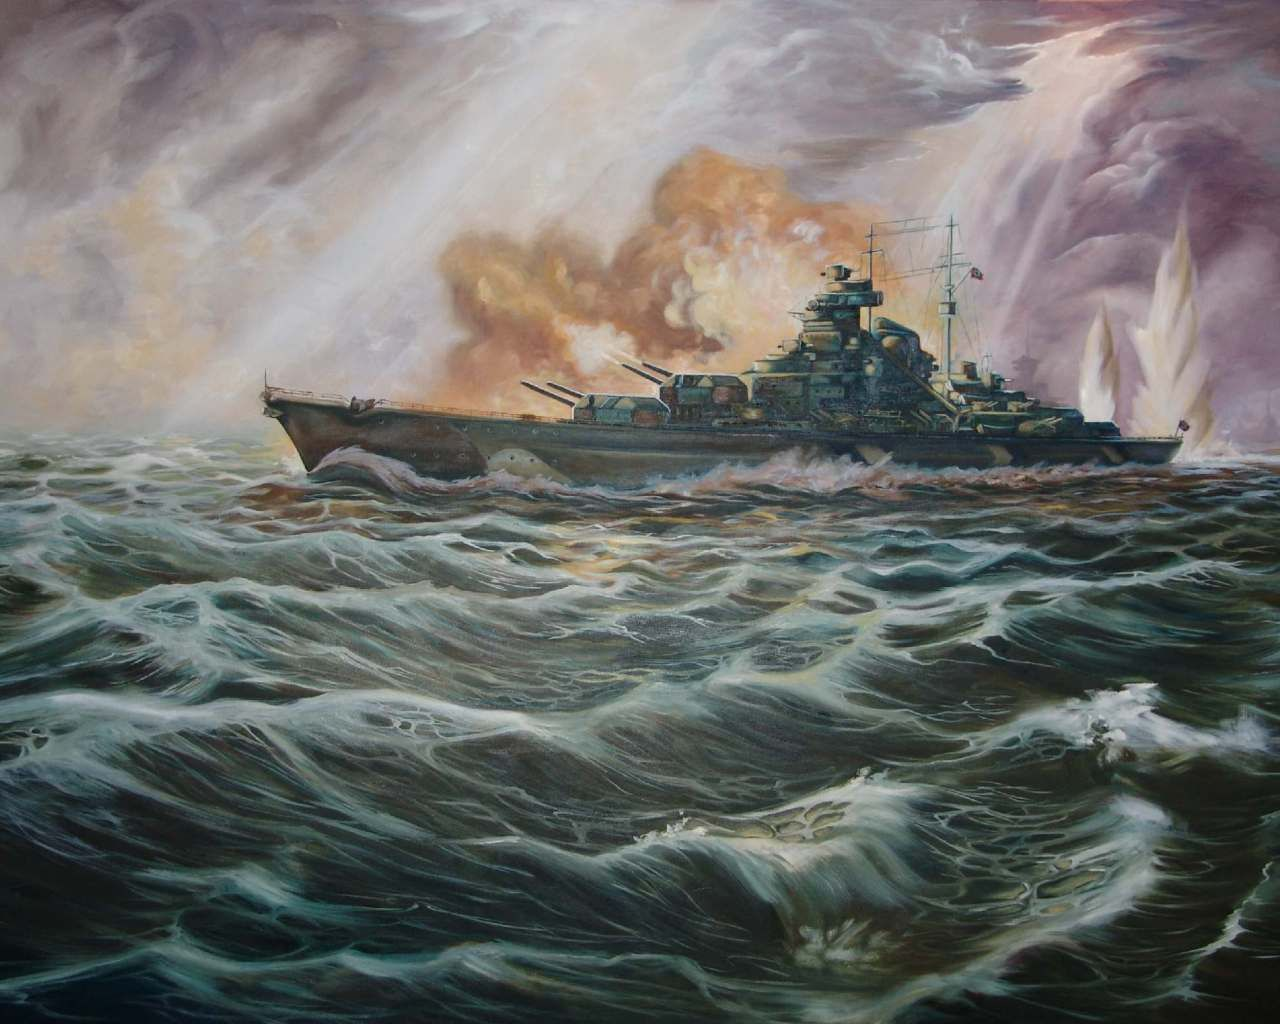 Bismarck Art Battle Battleship Bismarck Drawing Fire German 1280x1024